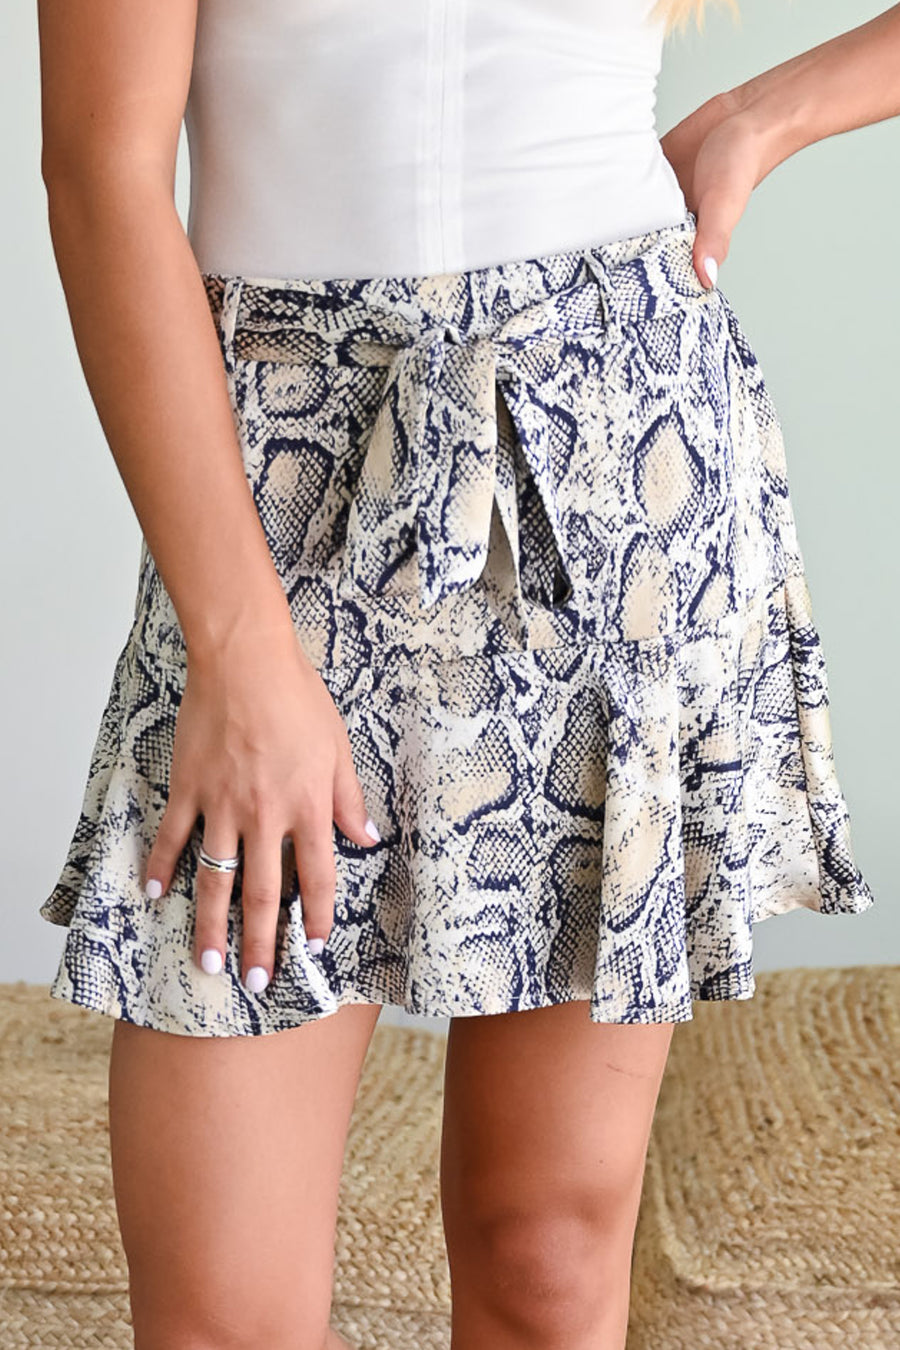 Good Night Skirt - Snake Print womens trendy tie waist mini skirt closet candy side